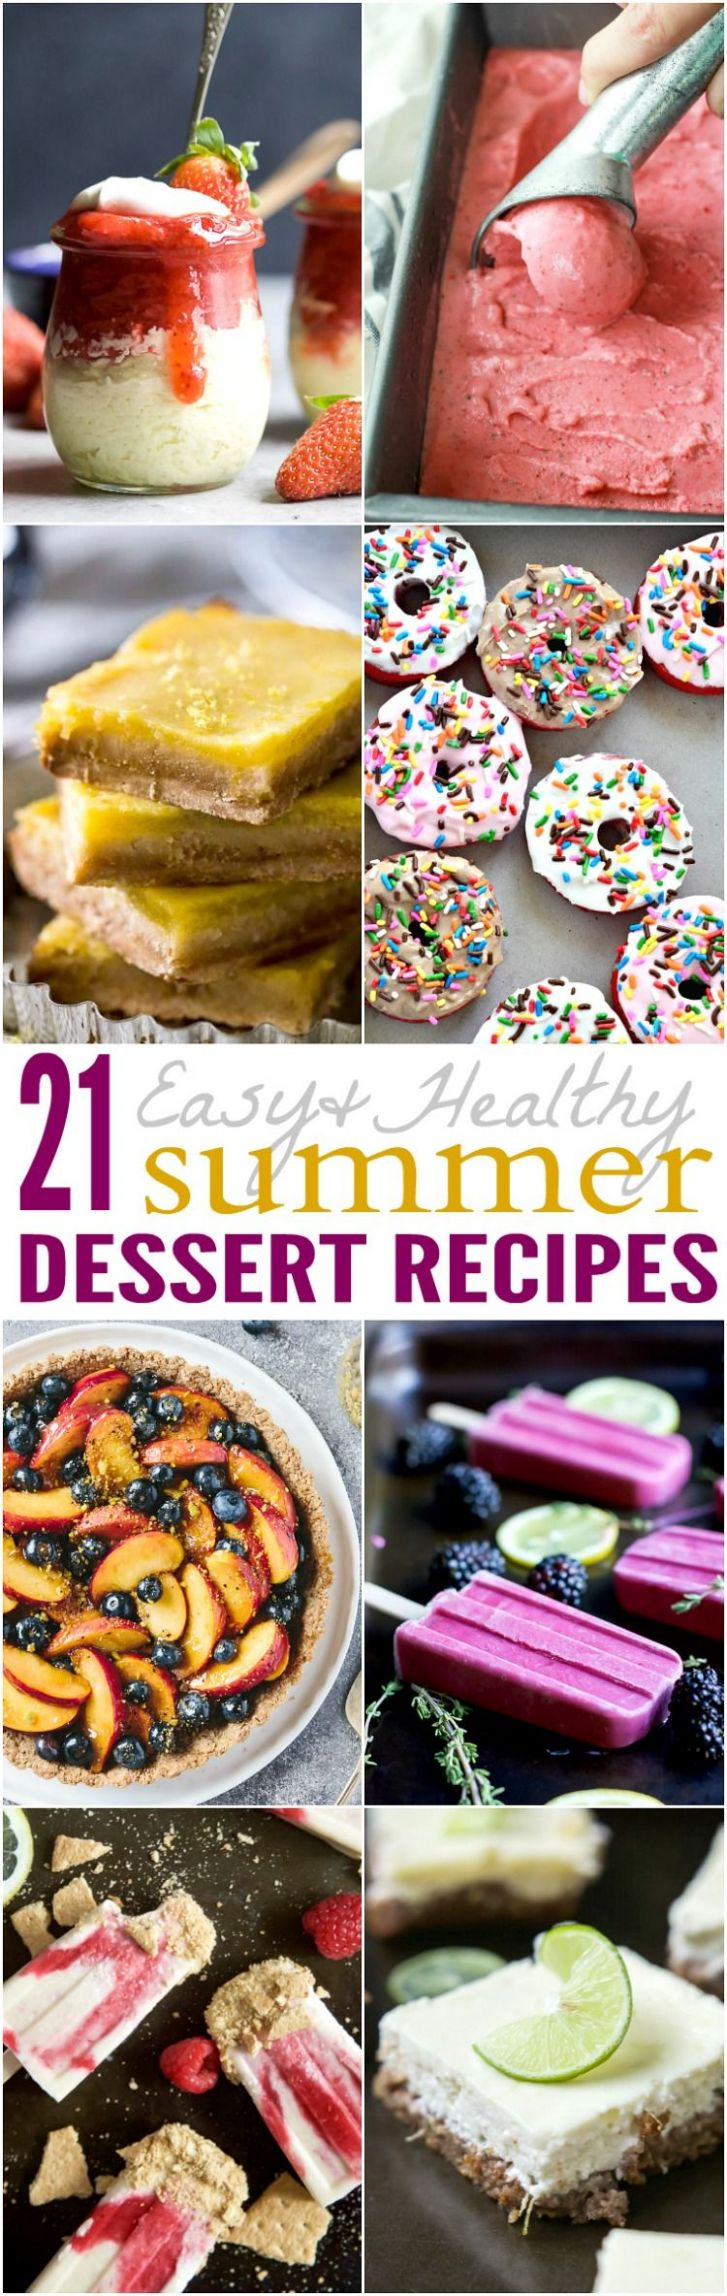 10 Easy & Healthy Summer Dessert Recipes | Summer dessert recipes ..